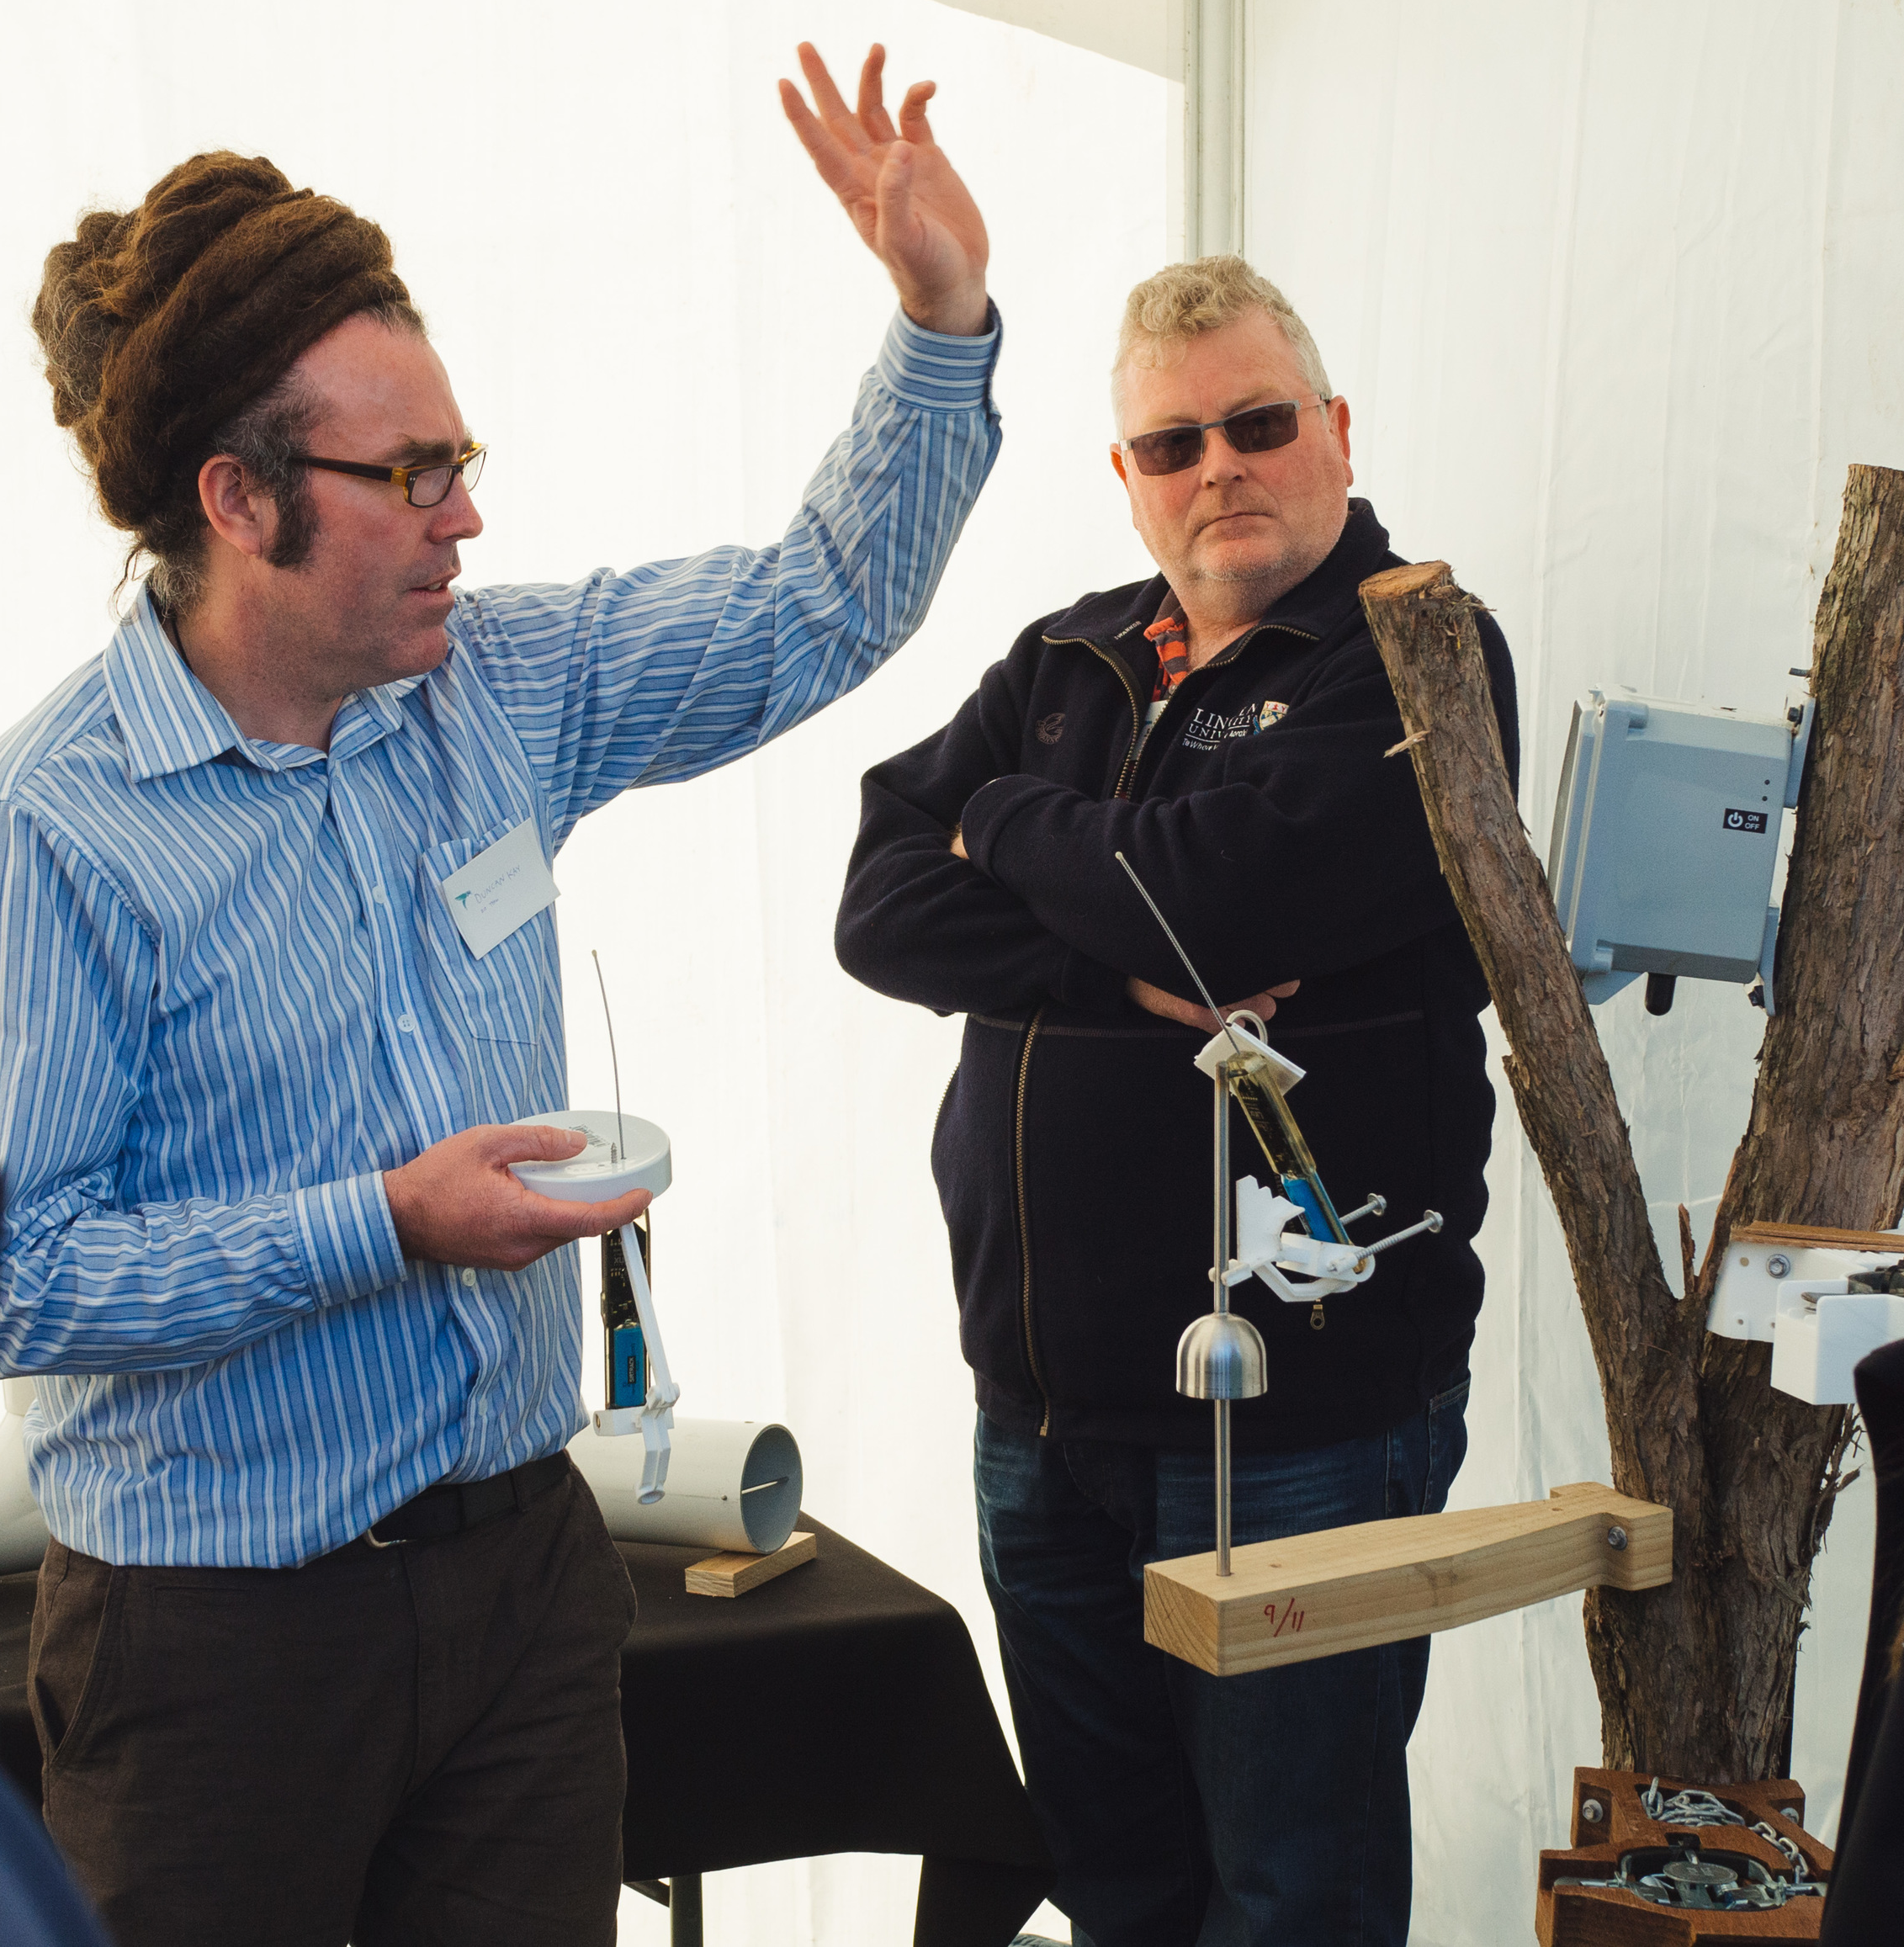 ZIP Field Team Lead Duncan Kay demonstrating the 'ZIP-tip' prototype automated detection device to Dr James Ross of Lincoln University.